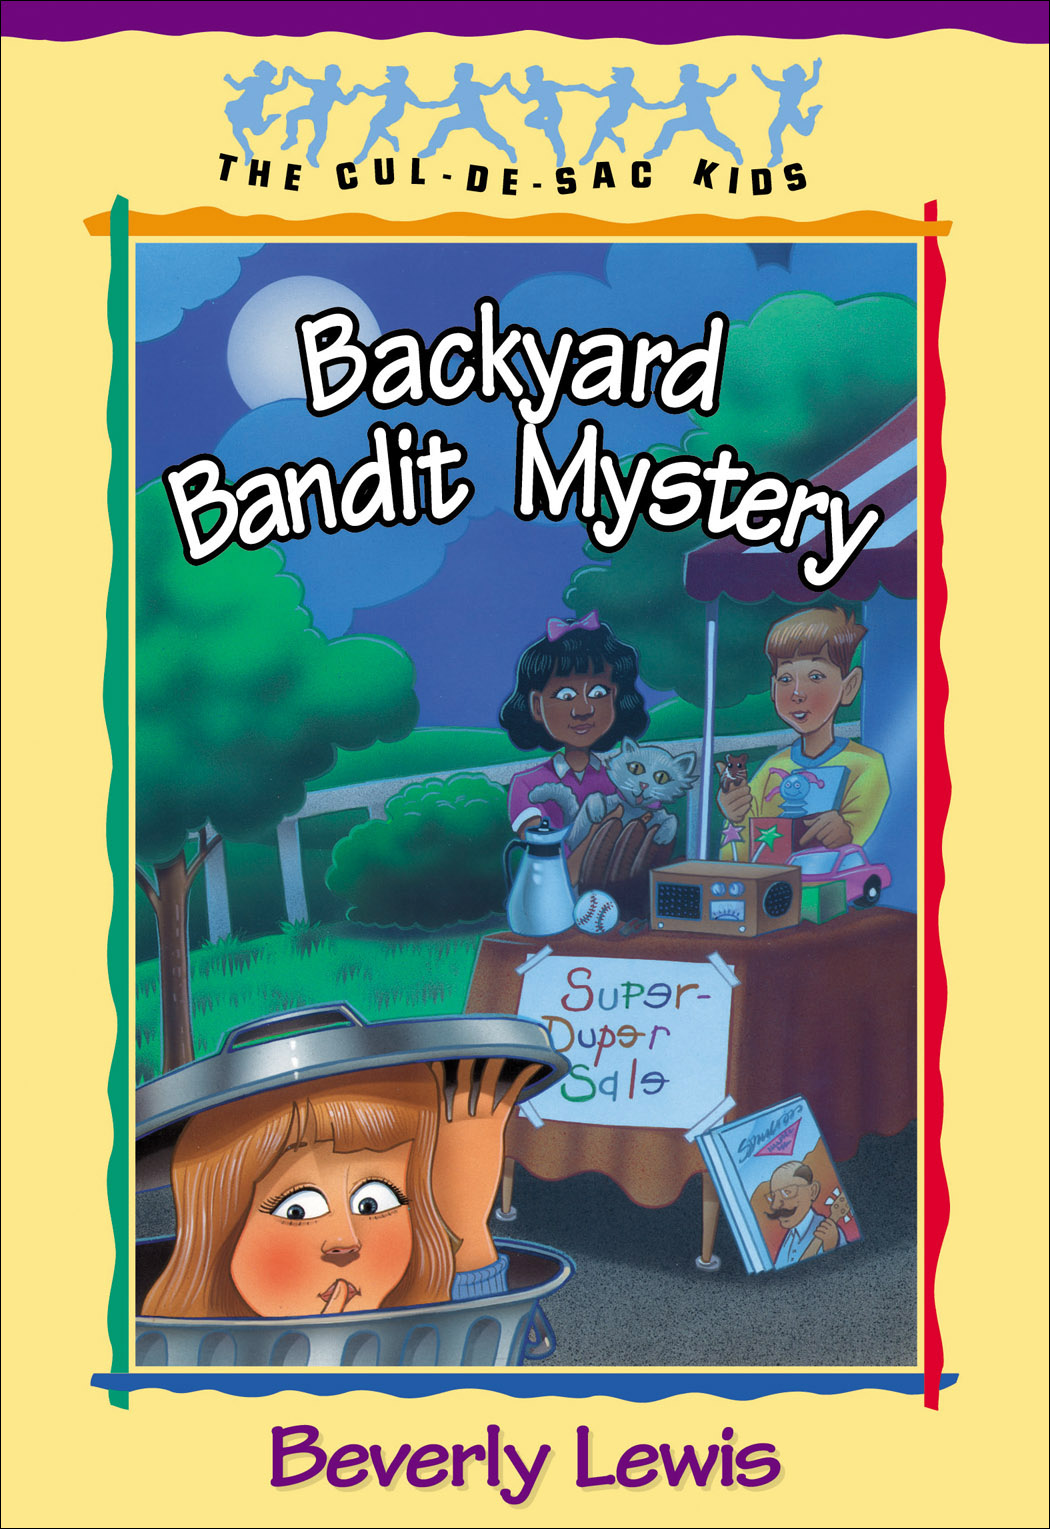 Backyard Bandit Mystery